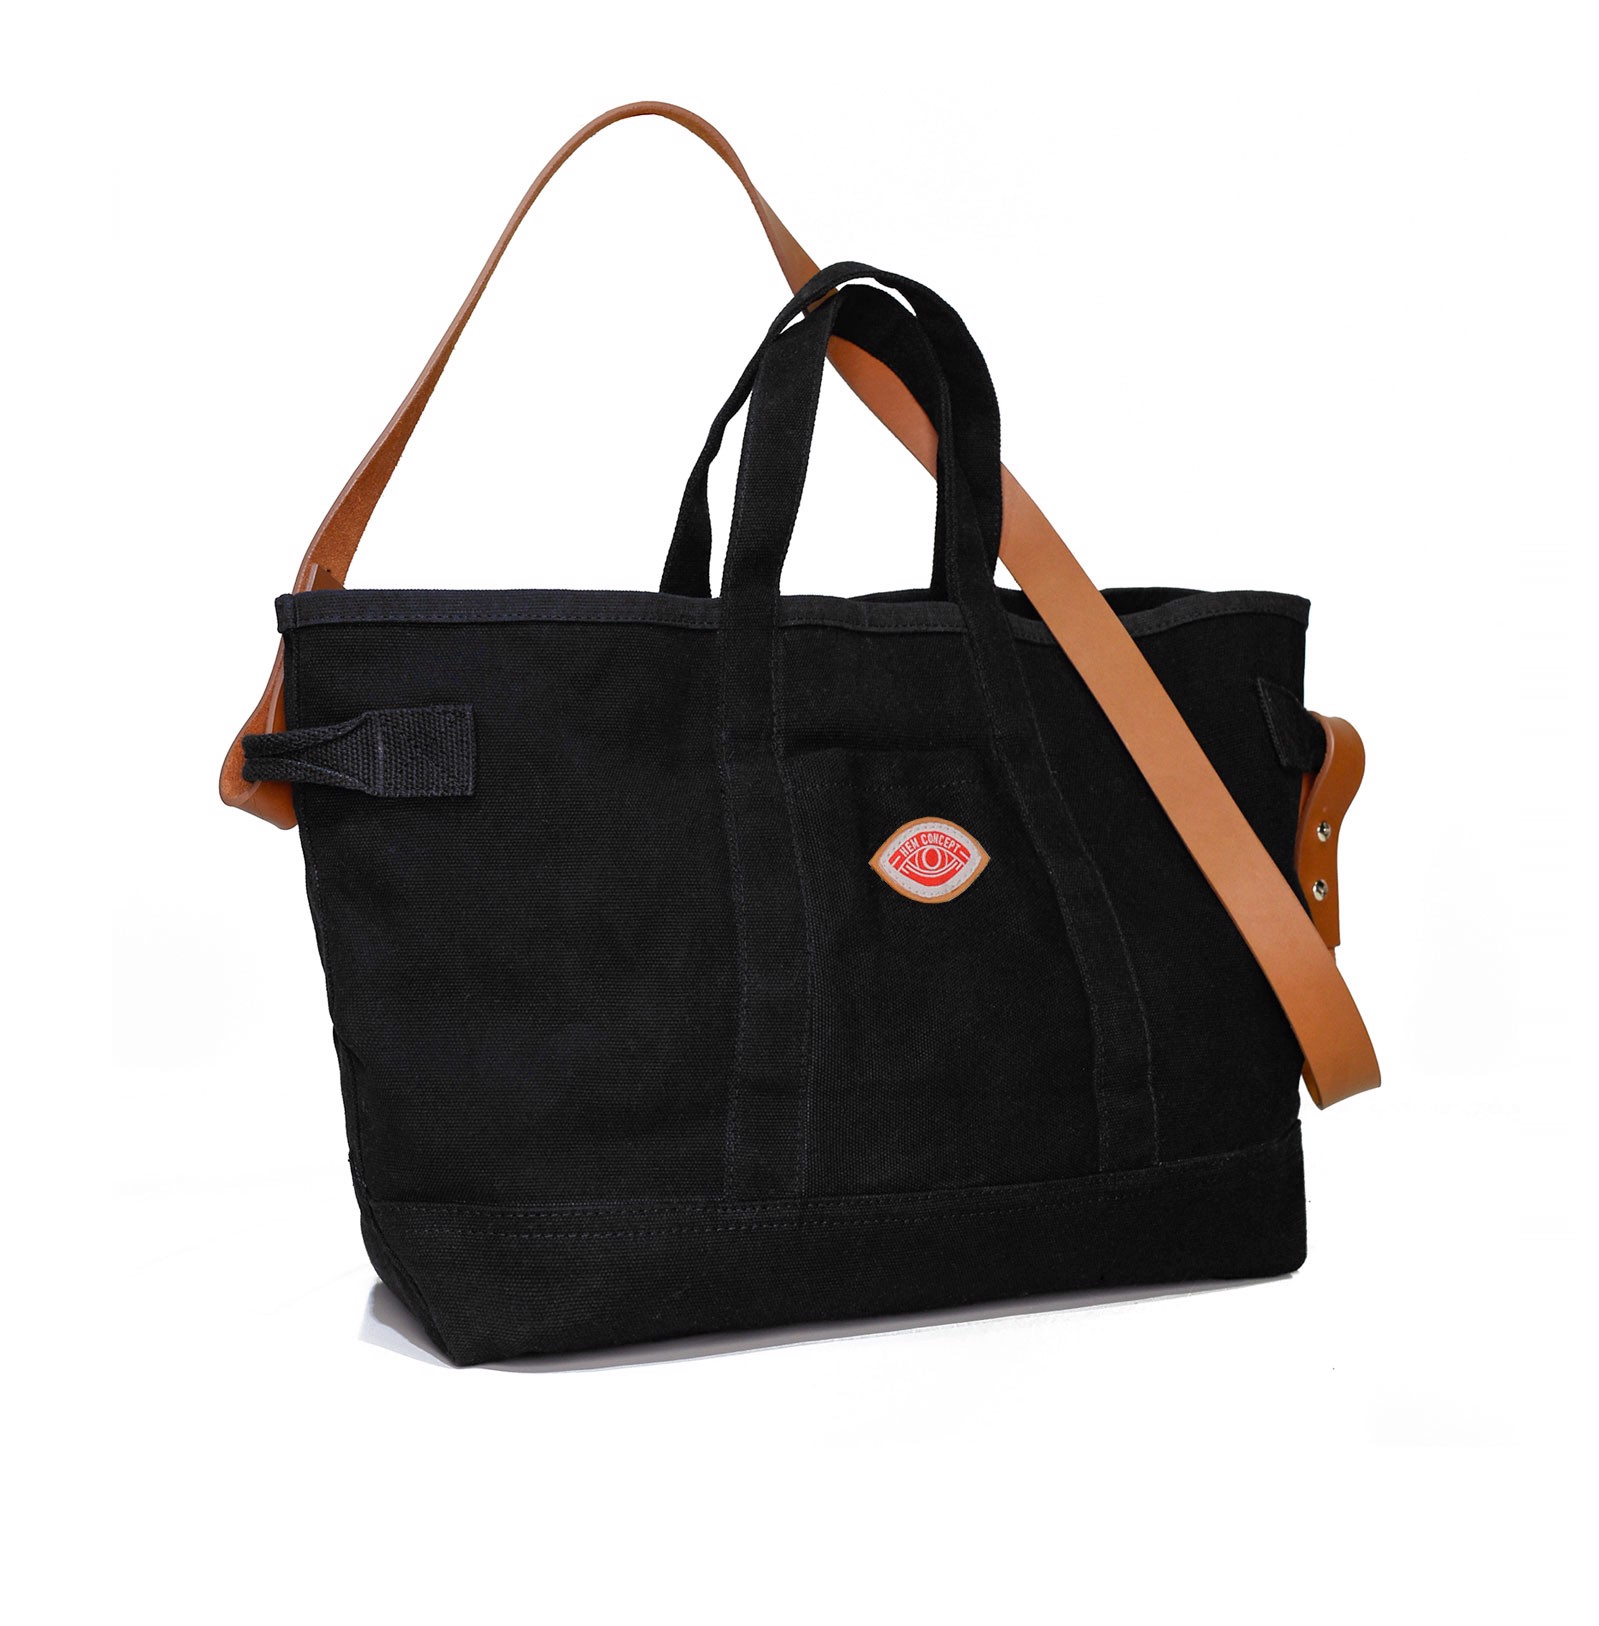 EVERYDAY TOTE- BLACK TAN